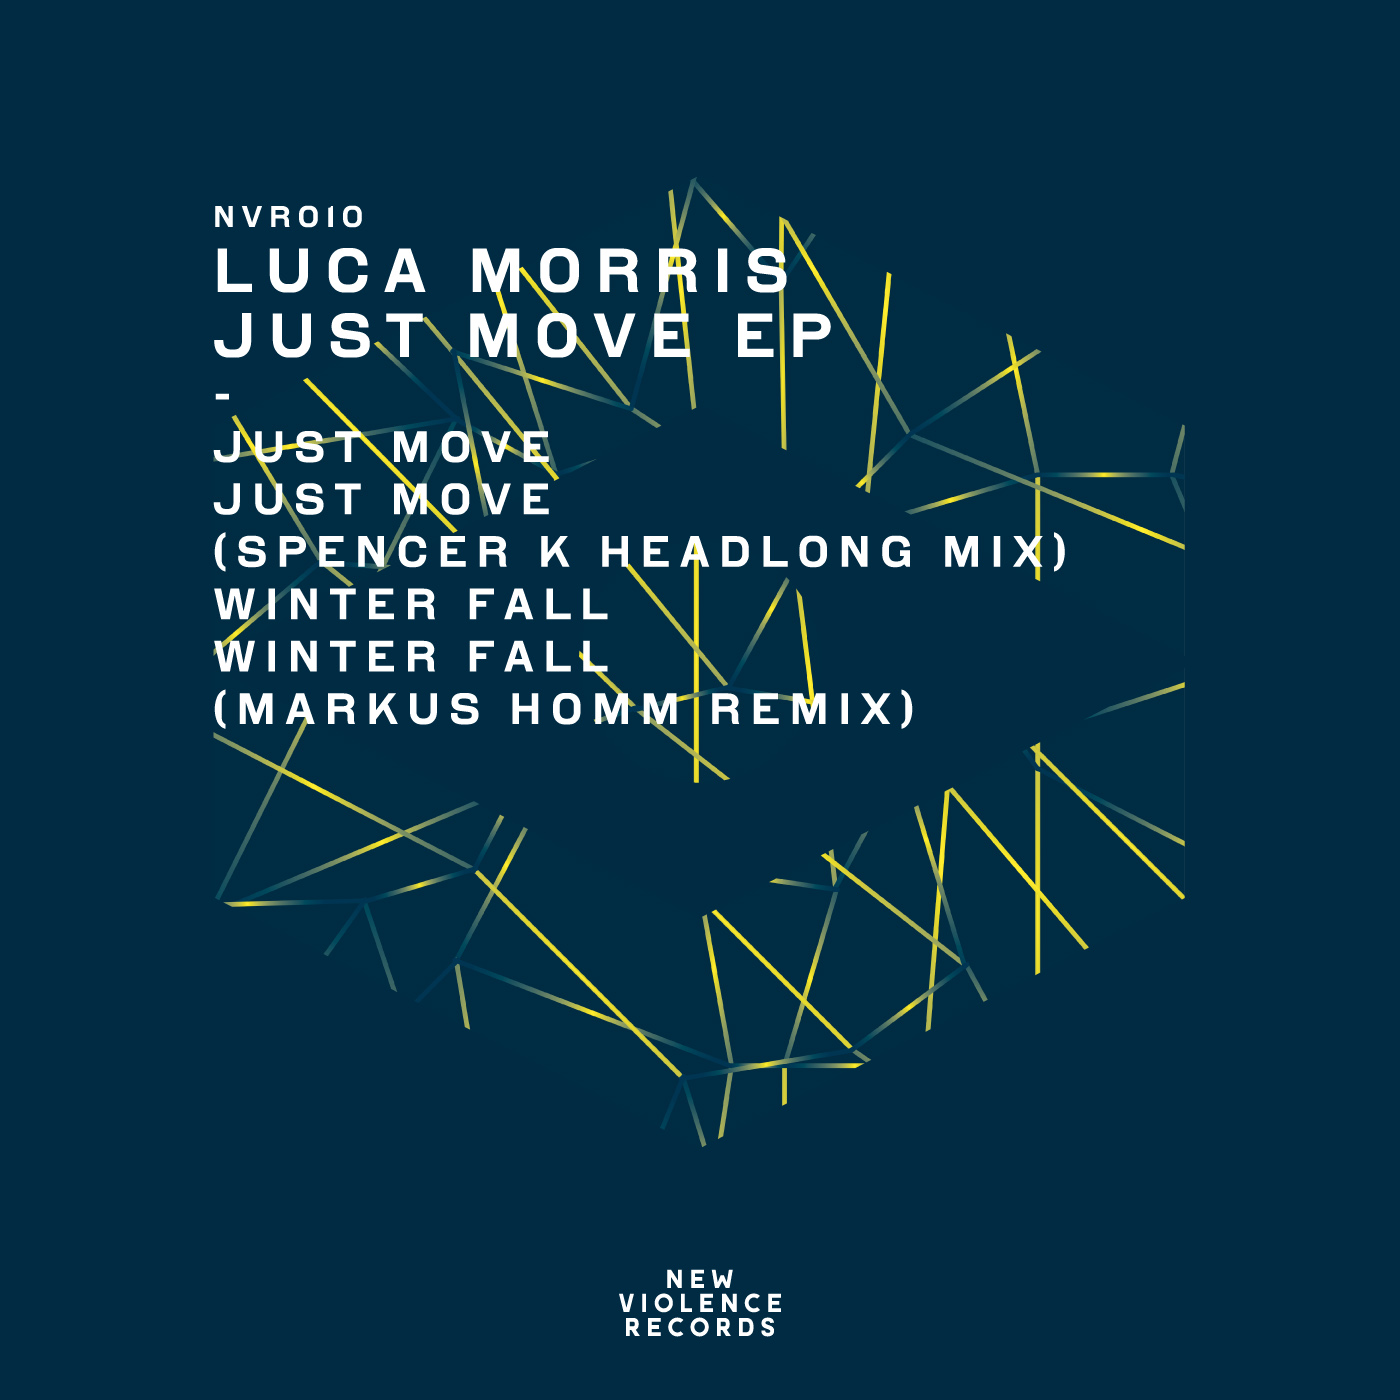 Lucas Morris, Winter Fall, New Violence Records, House, Techno, Tech House, Markus Homm, Remix, Soundspace, Premiere